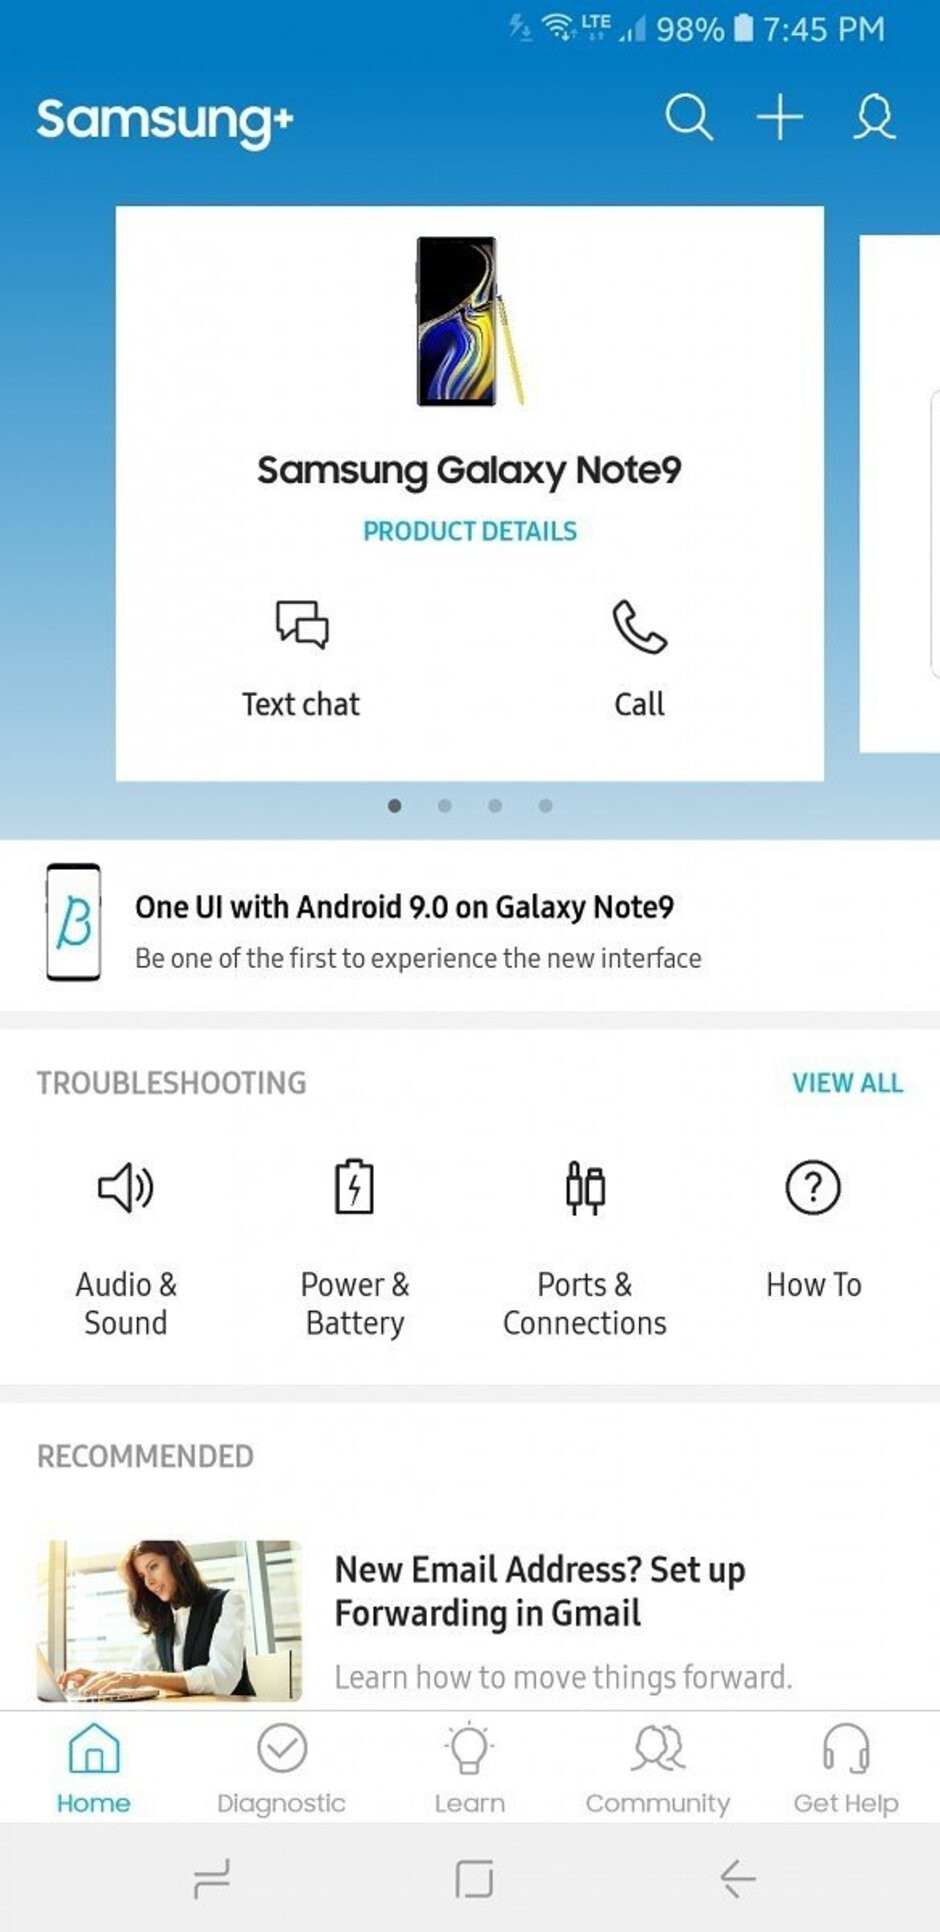 Samsung opens One UI beta program to Galaxy Note 9 users in the U.S.